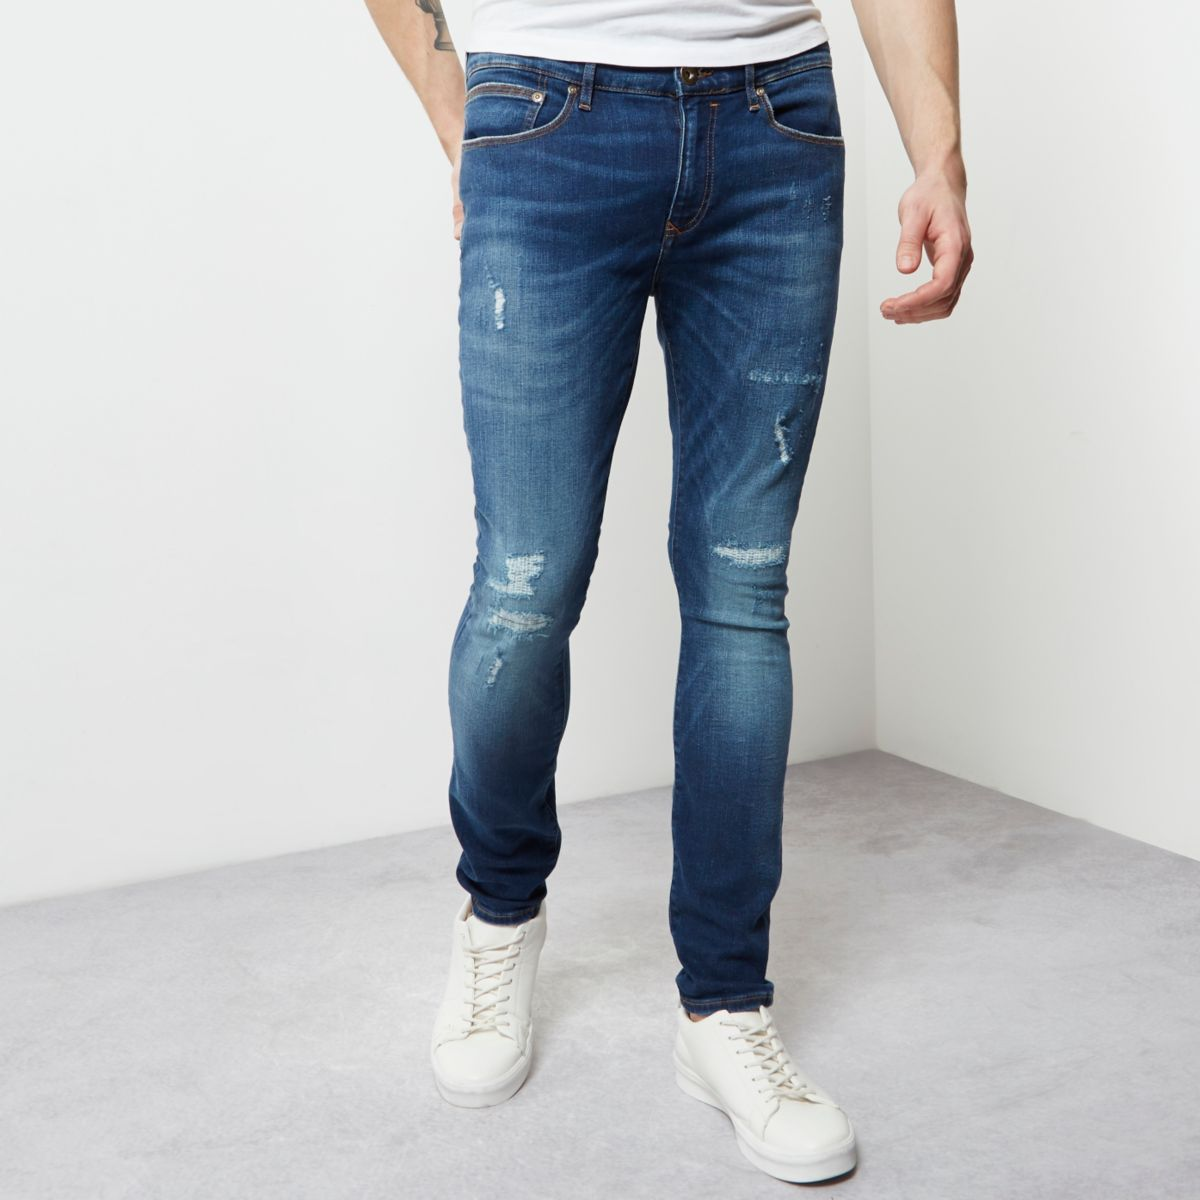 Danny – Blaue Superskinny Jeans